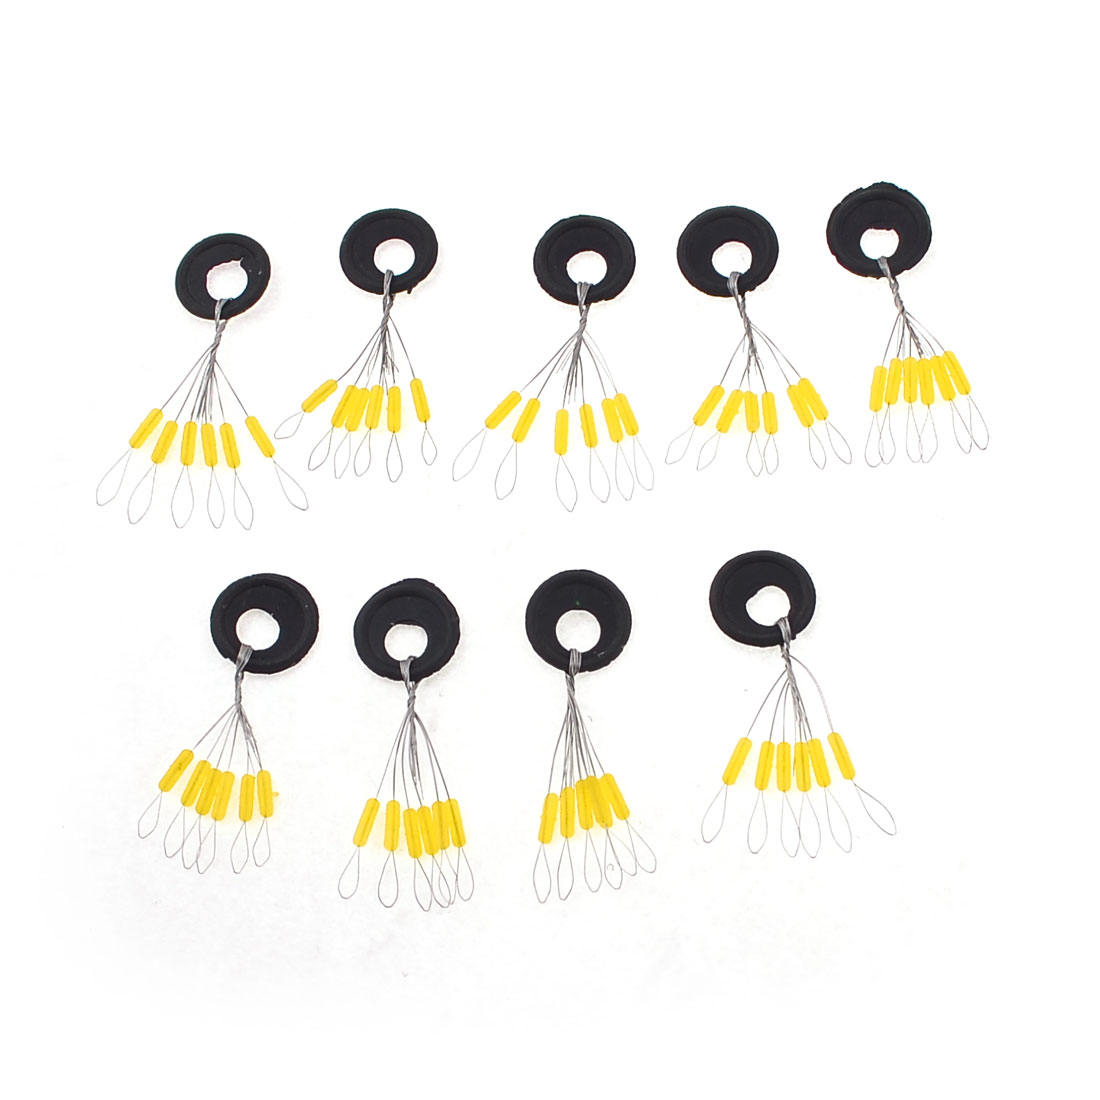 8mm x 2mm Cylindroid Shaped 6 in 1 Black Fishing Floaters 9 Pcs